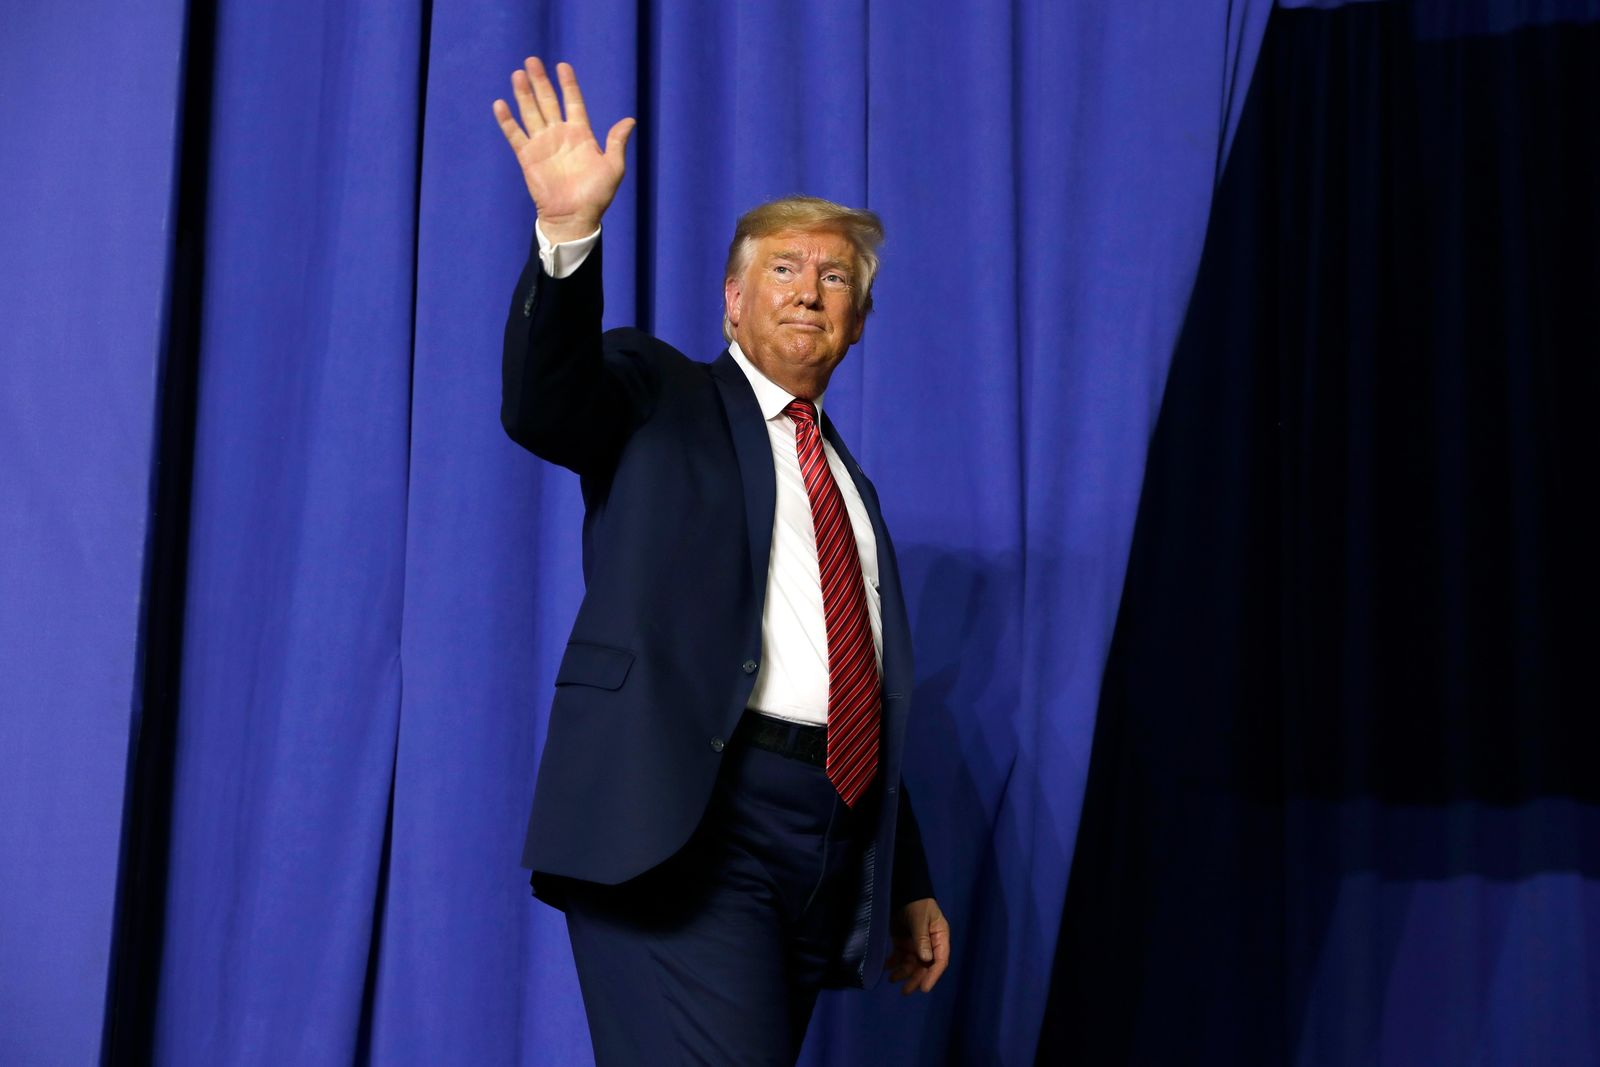 President Donald Trump waves after speaking with Australian Prime Minister Scott Morrison at Pratt Industries, Sunday, Sept 22, 2019, in Wapakoneta, Ohio. (AP Photo/Evan Vucci)